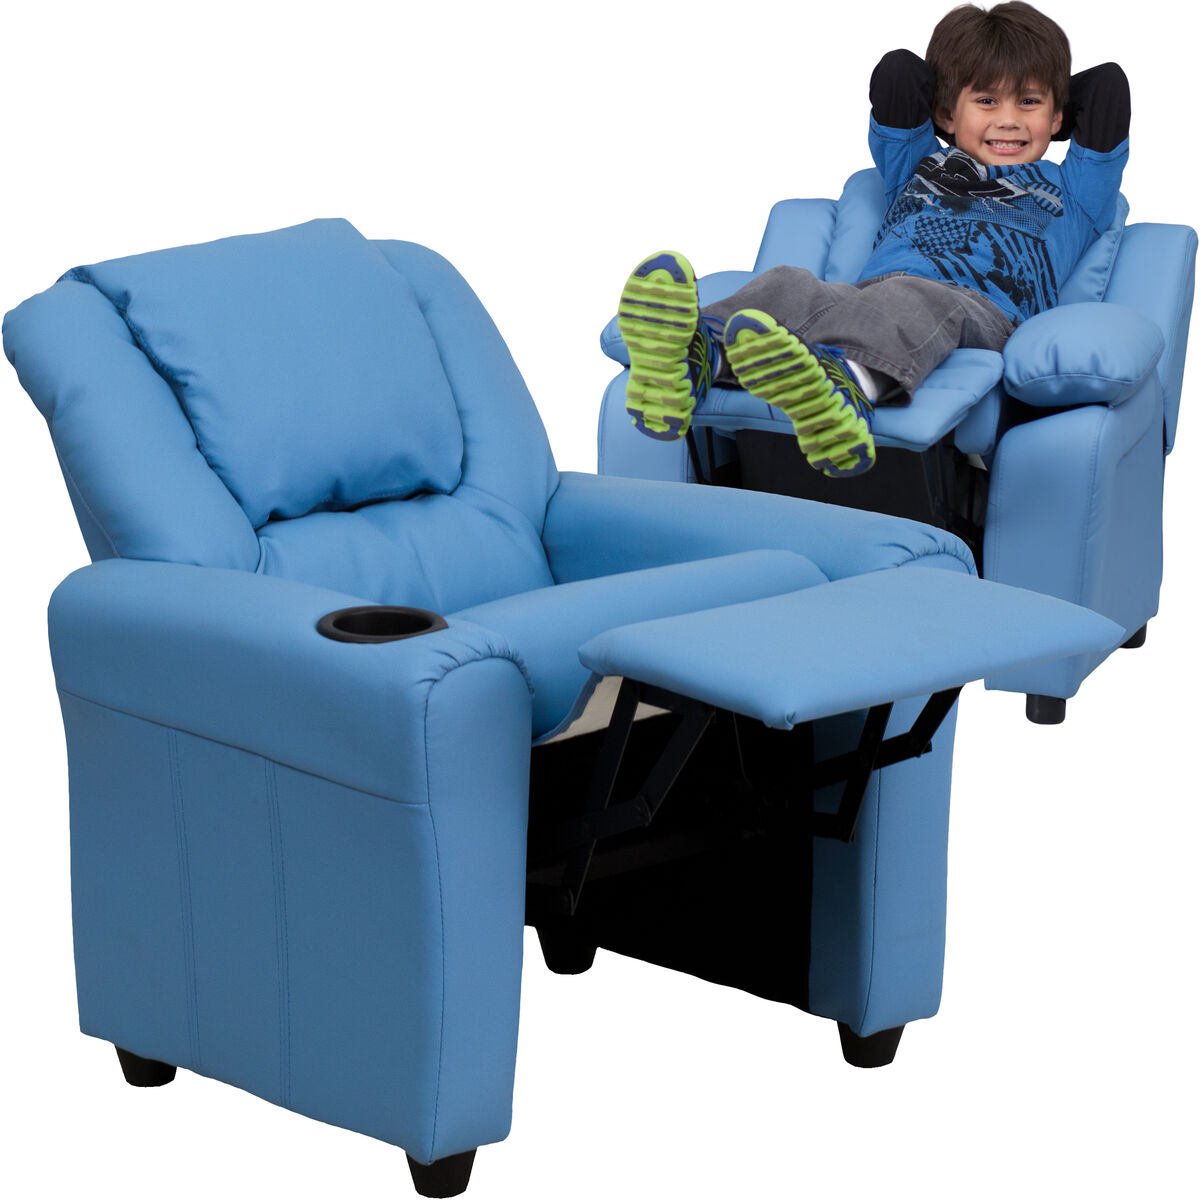 Flash furniture contemporary light blue vinyl kids for Kids recliner chair